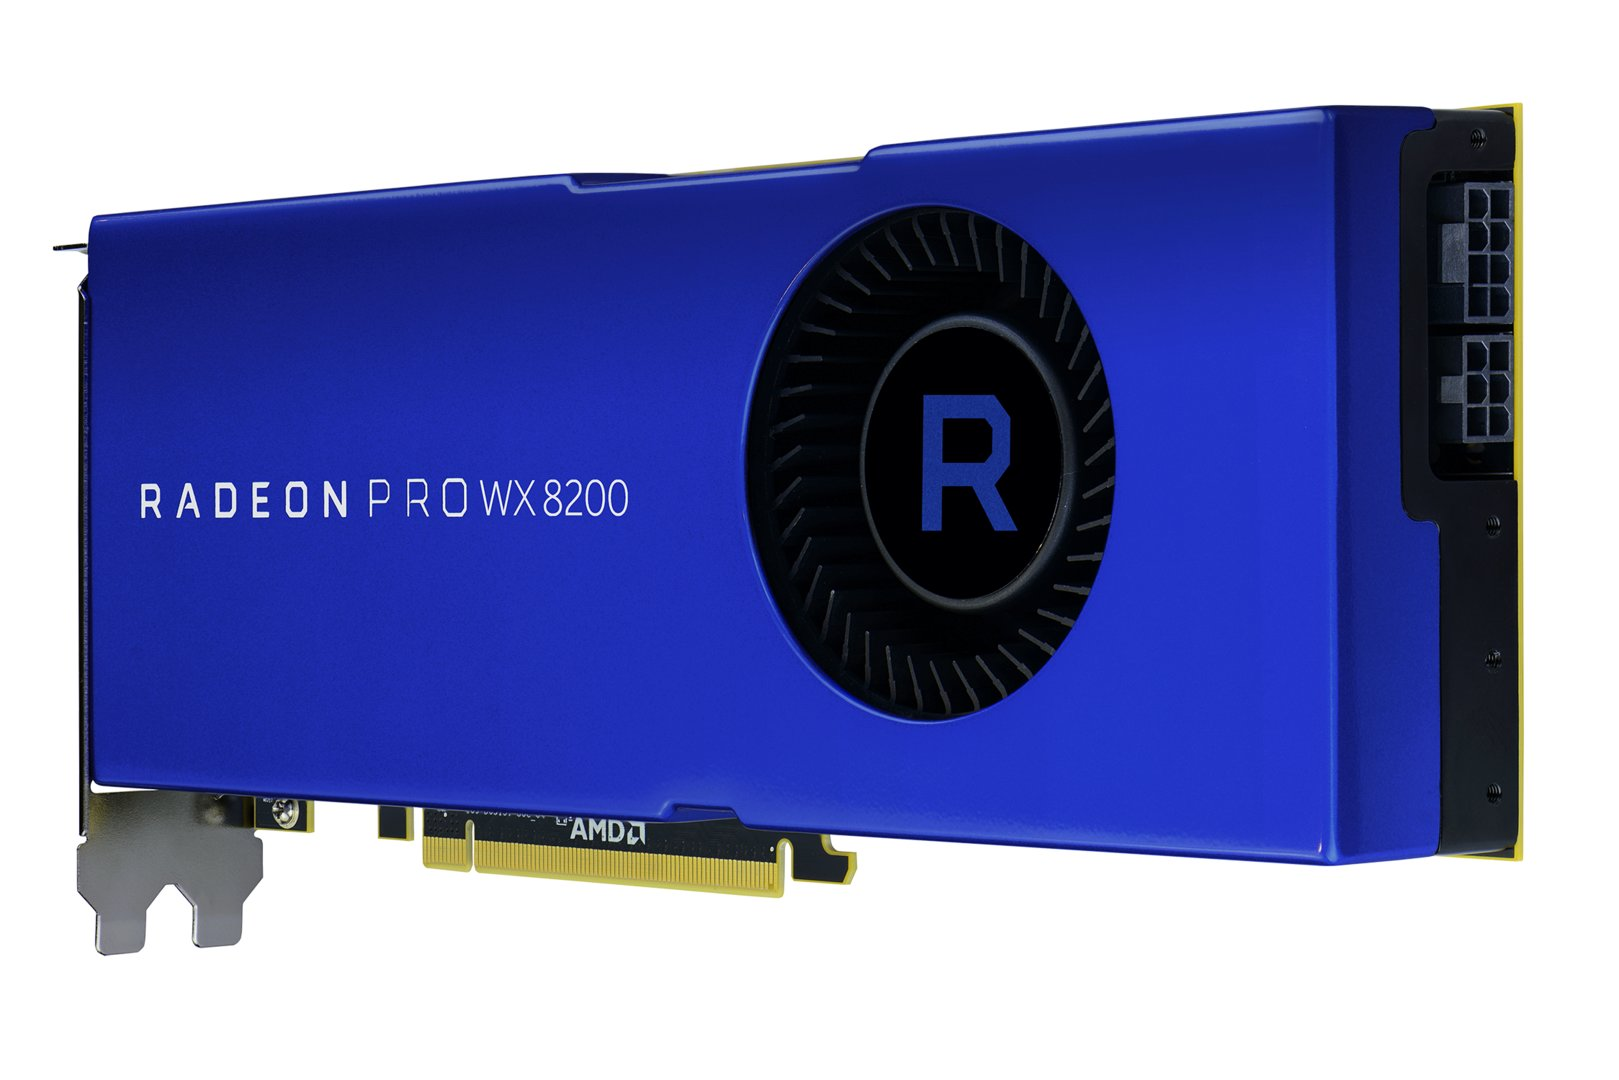 AMD releases Radeon Pro WX 8200 at SIGGRAPH 2018